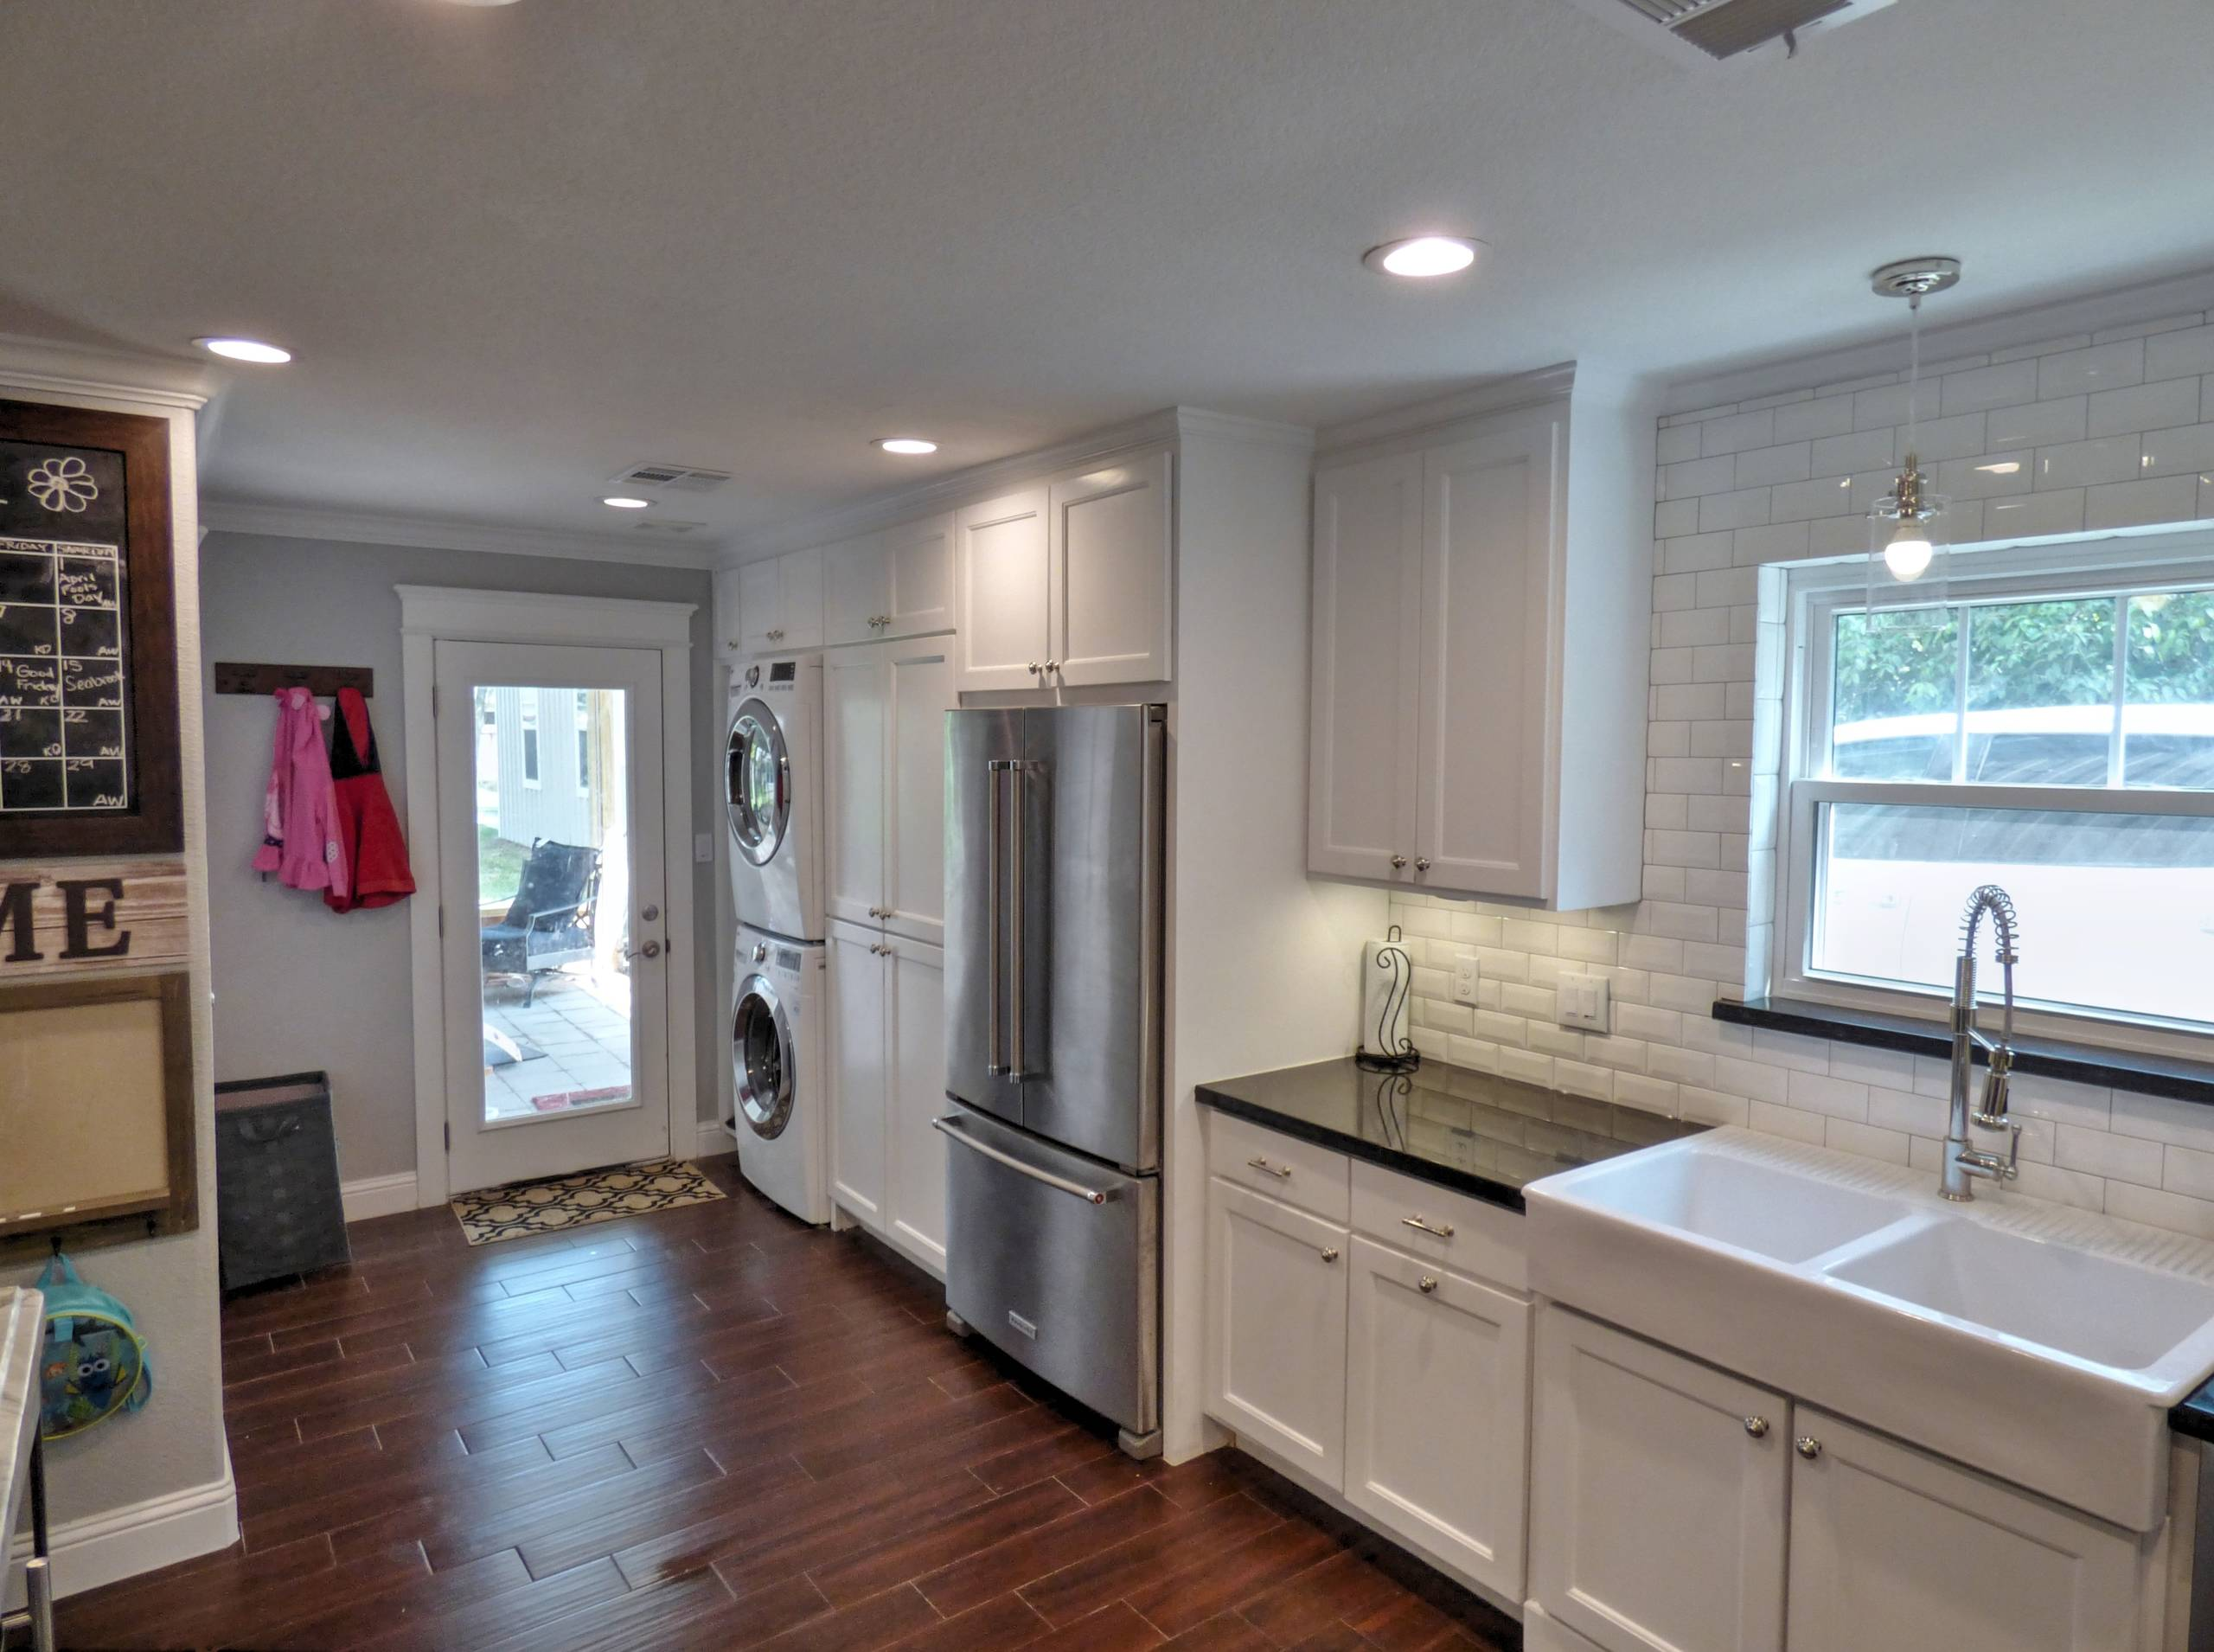 King Kitchen Pantry and Backdoor